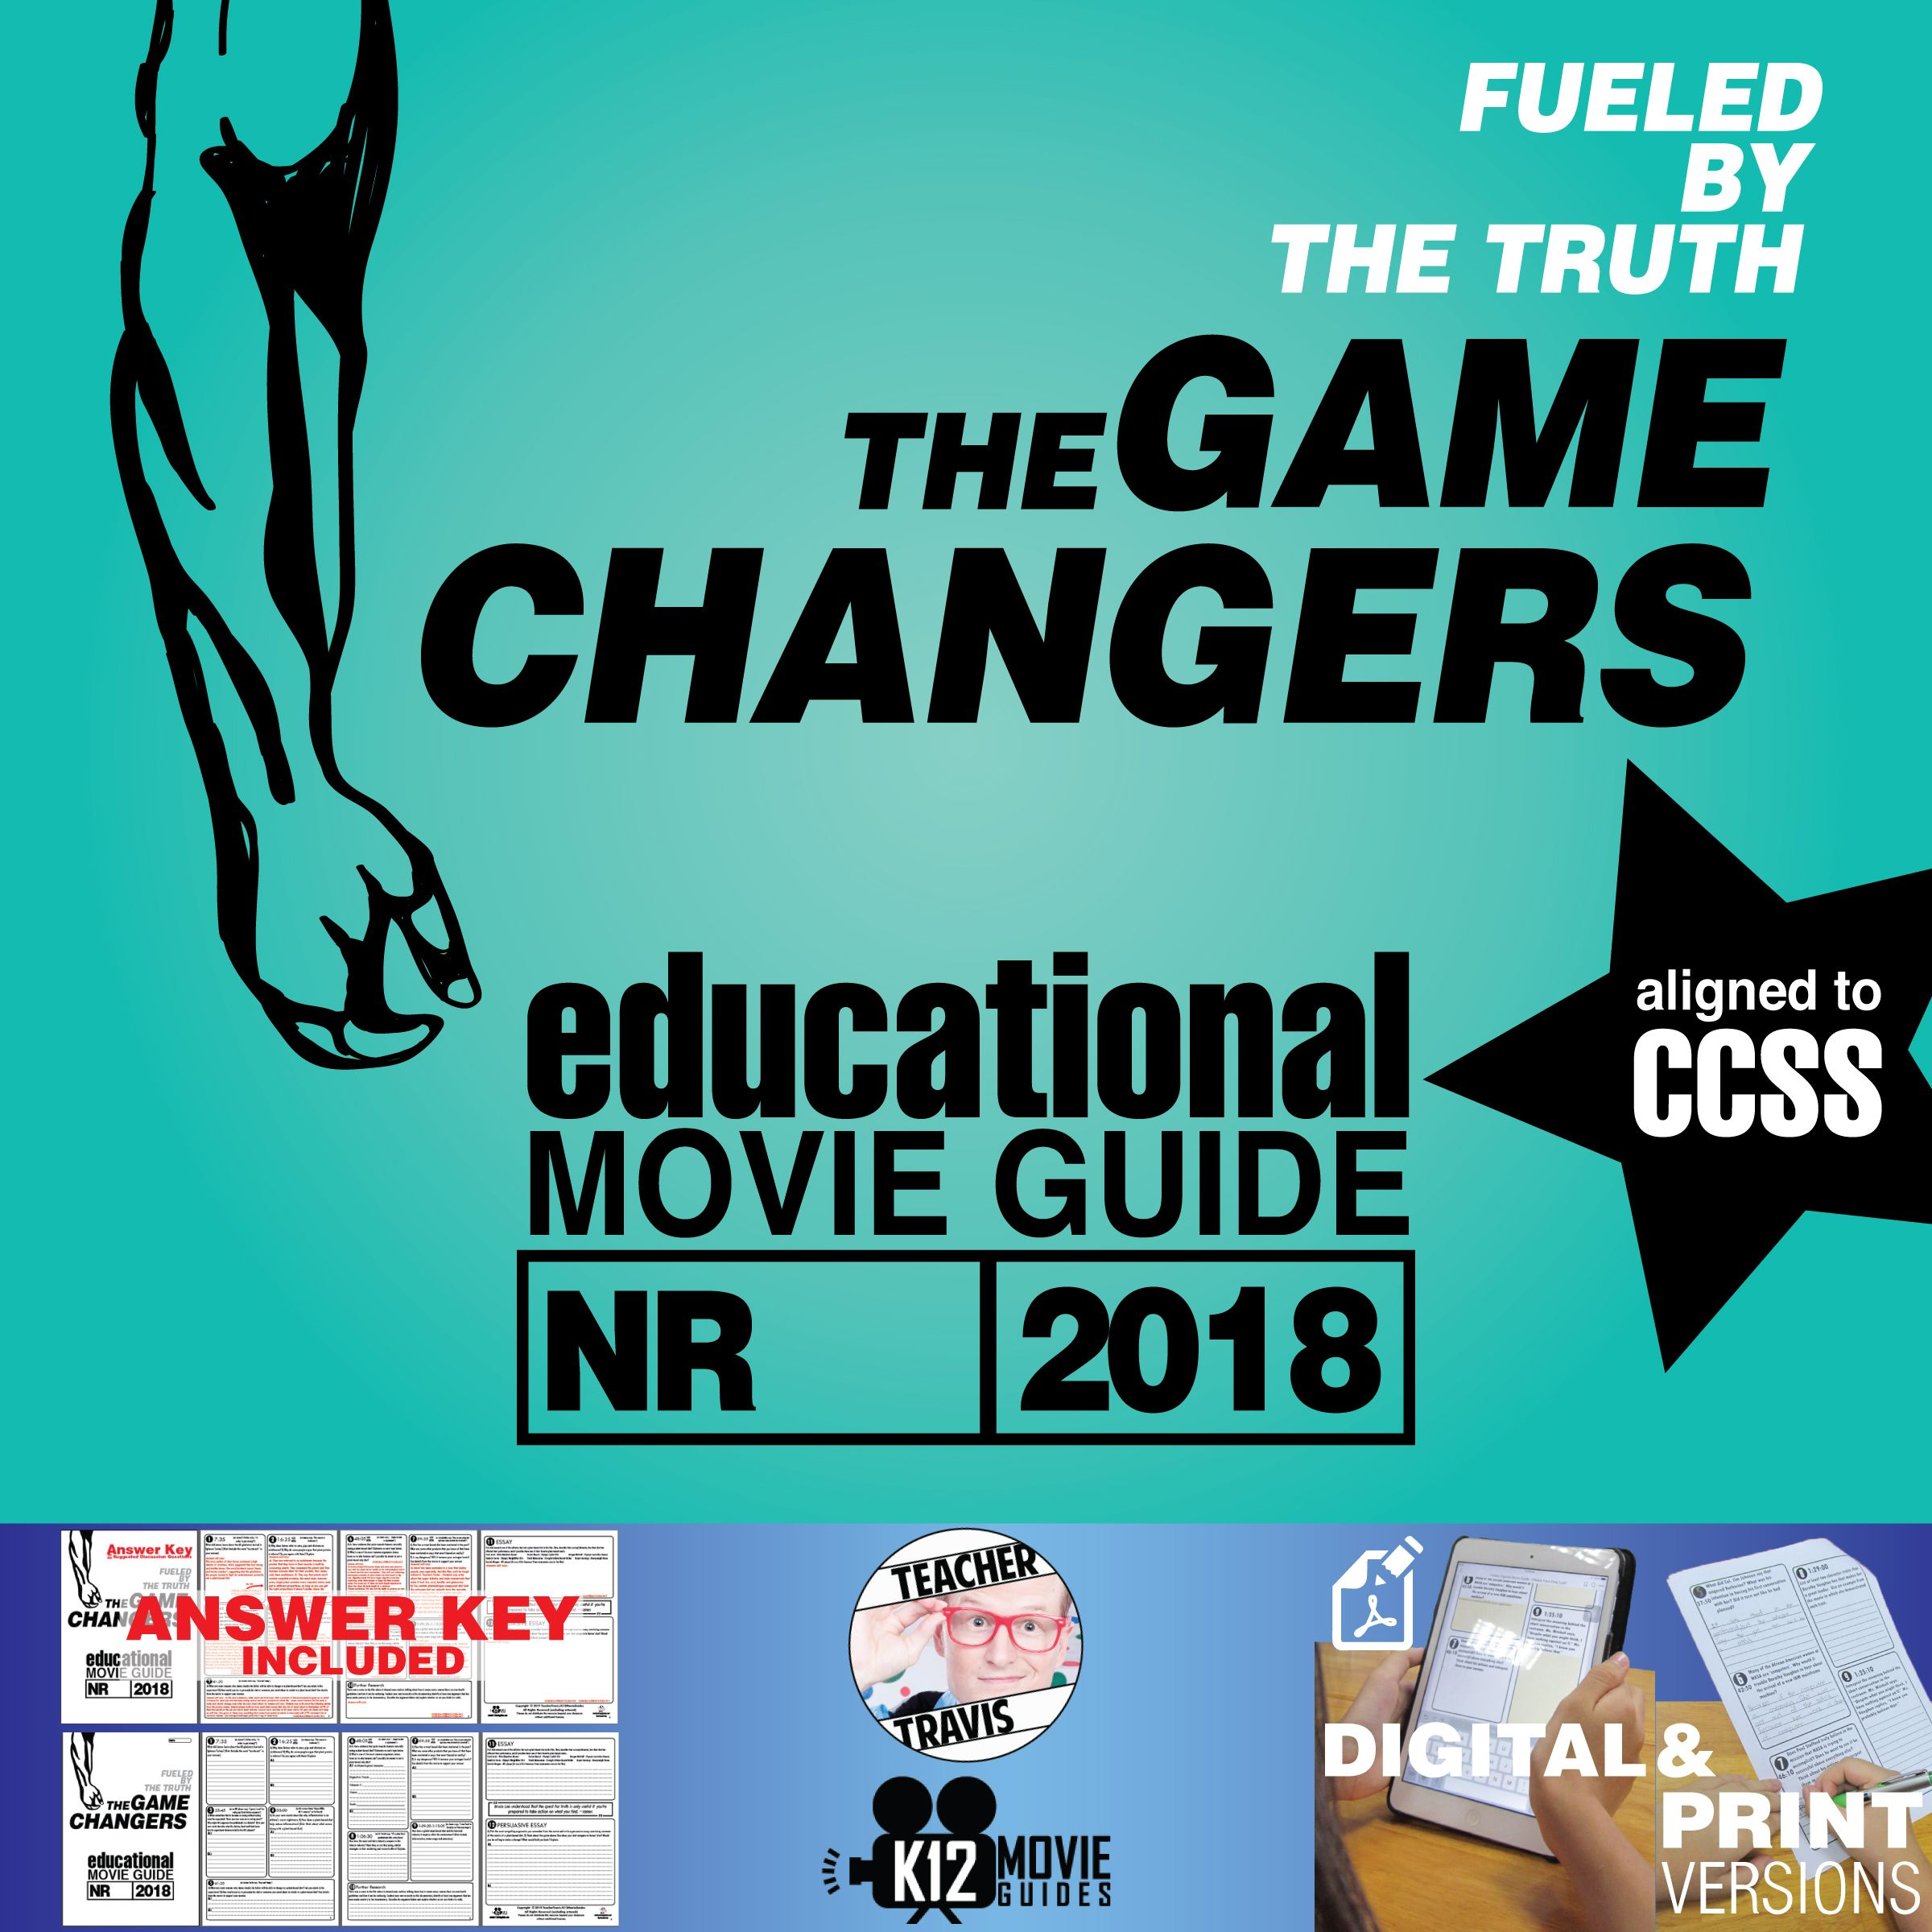 The Game Changers Documentary Movie Guide